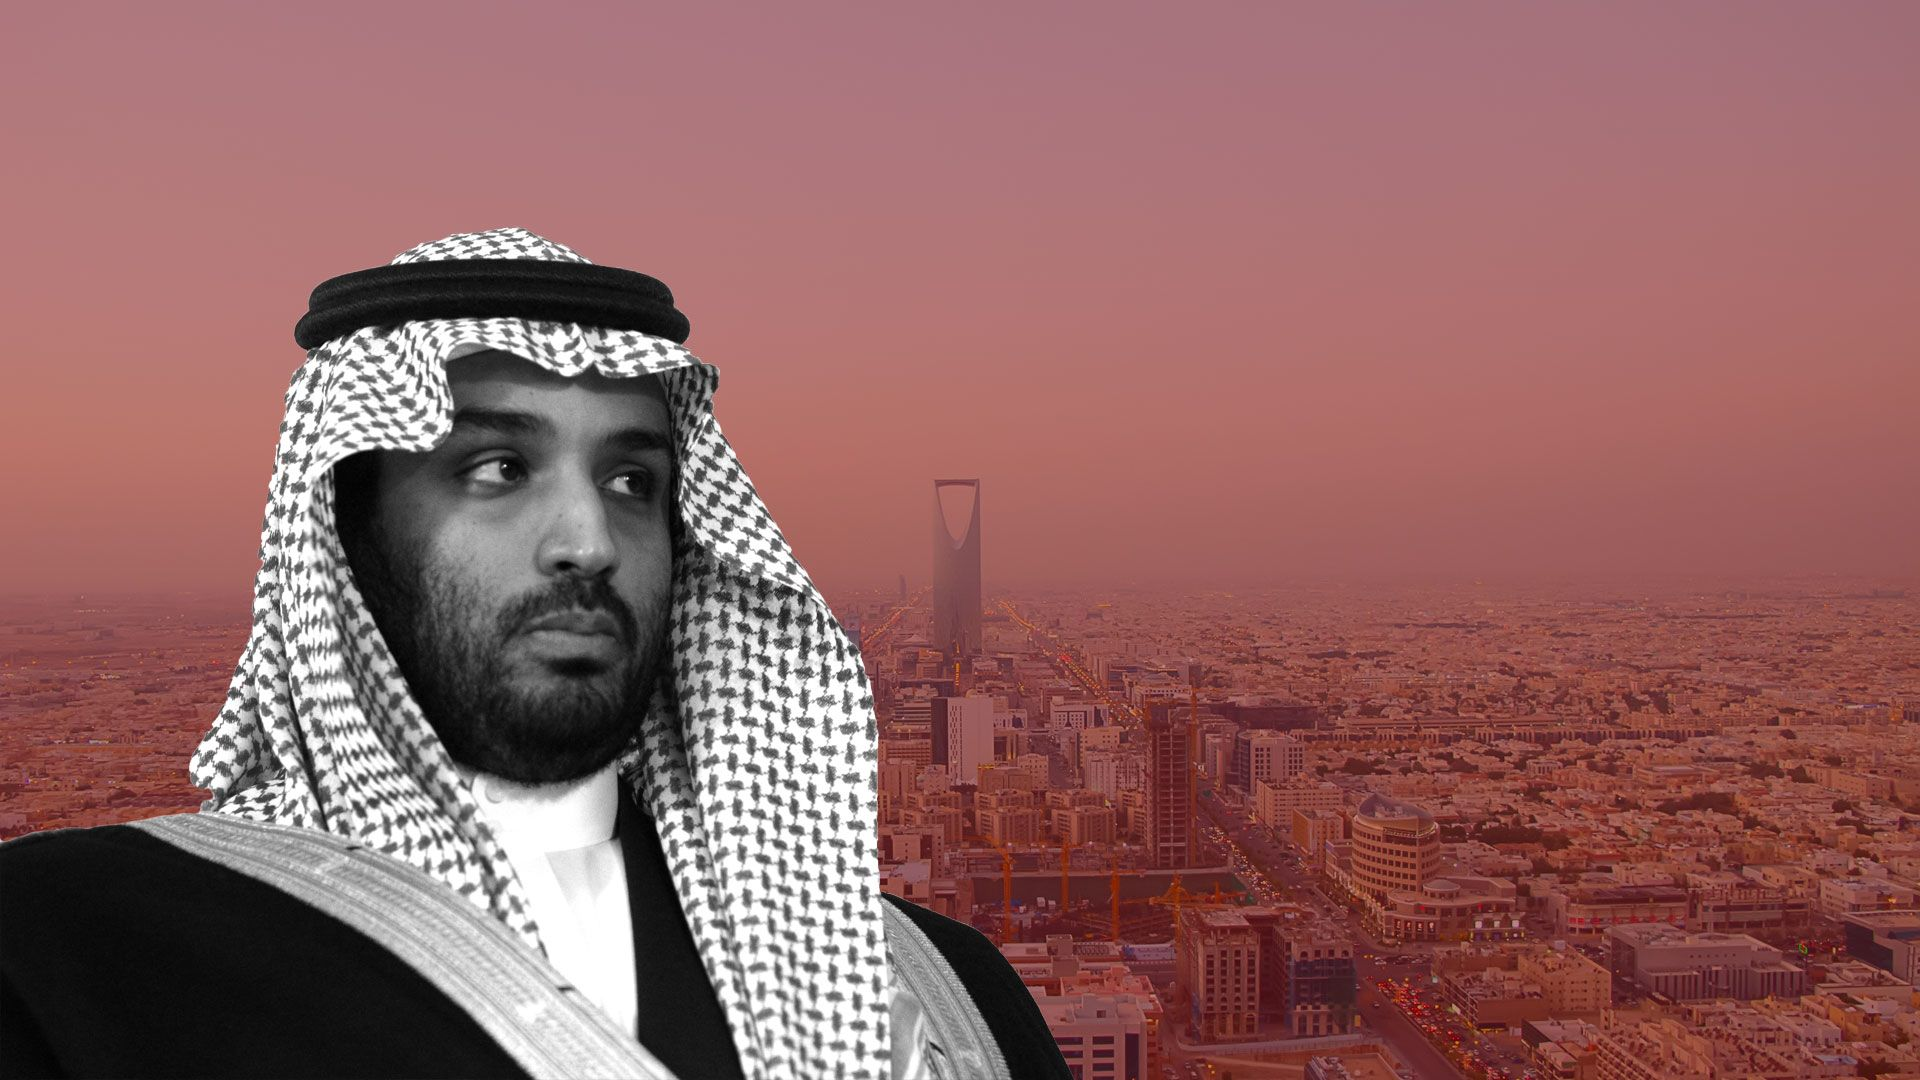 Mohammed Bin Salman over a filtered photo of Riyadh